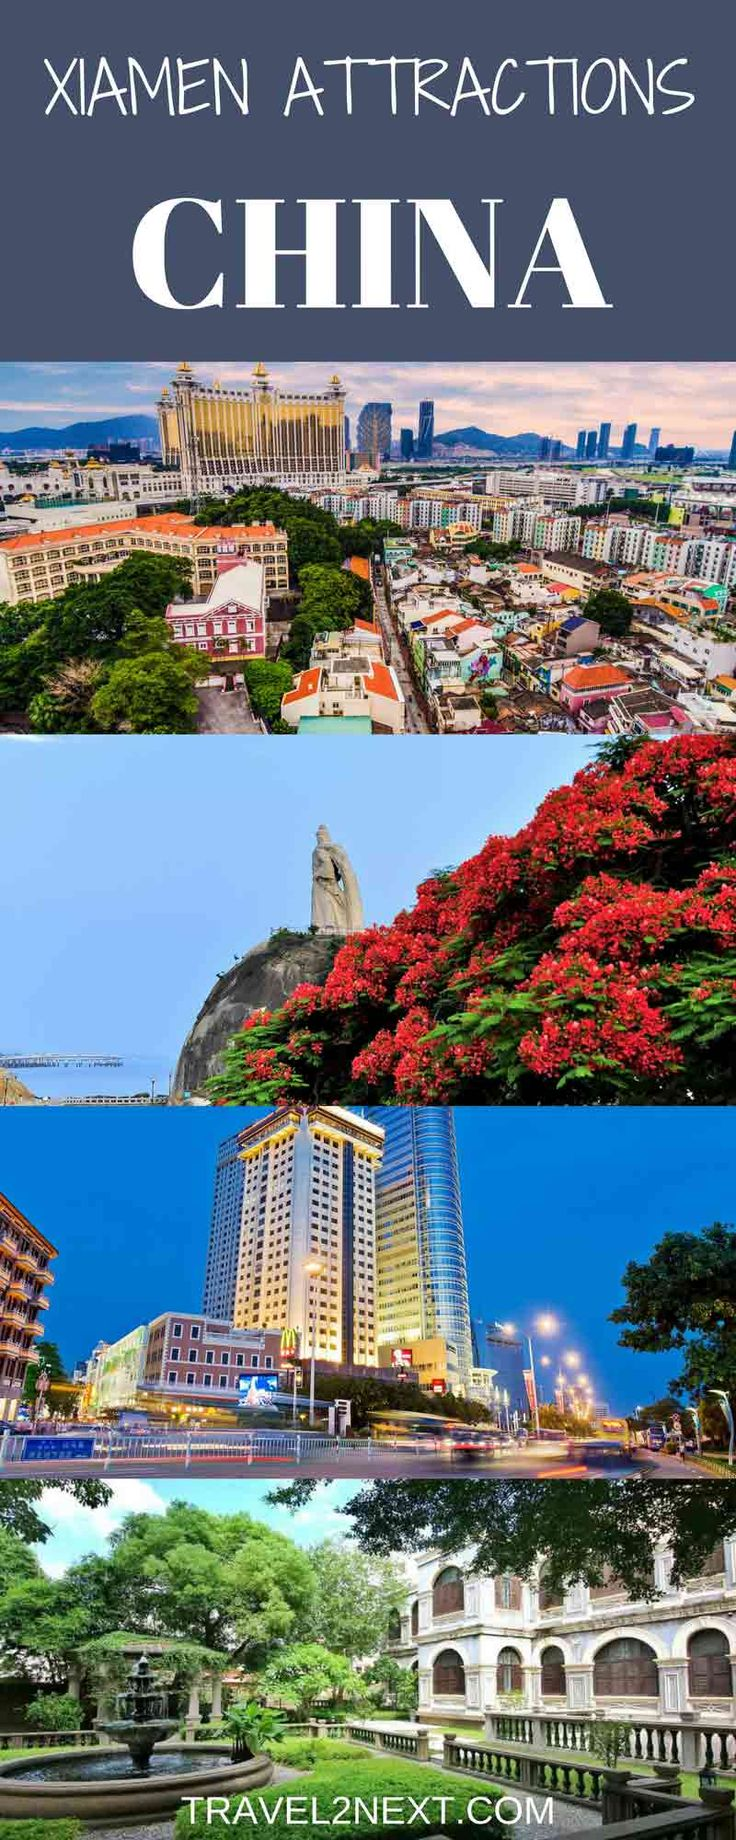 Xiamen Attractions. It may be just one square kilometre in size, but Xiamen's Gulang Island knows how to drum up interest beyond its sleek measurements.